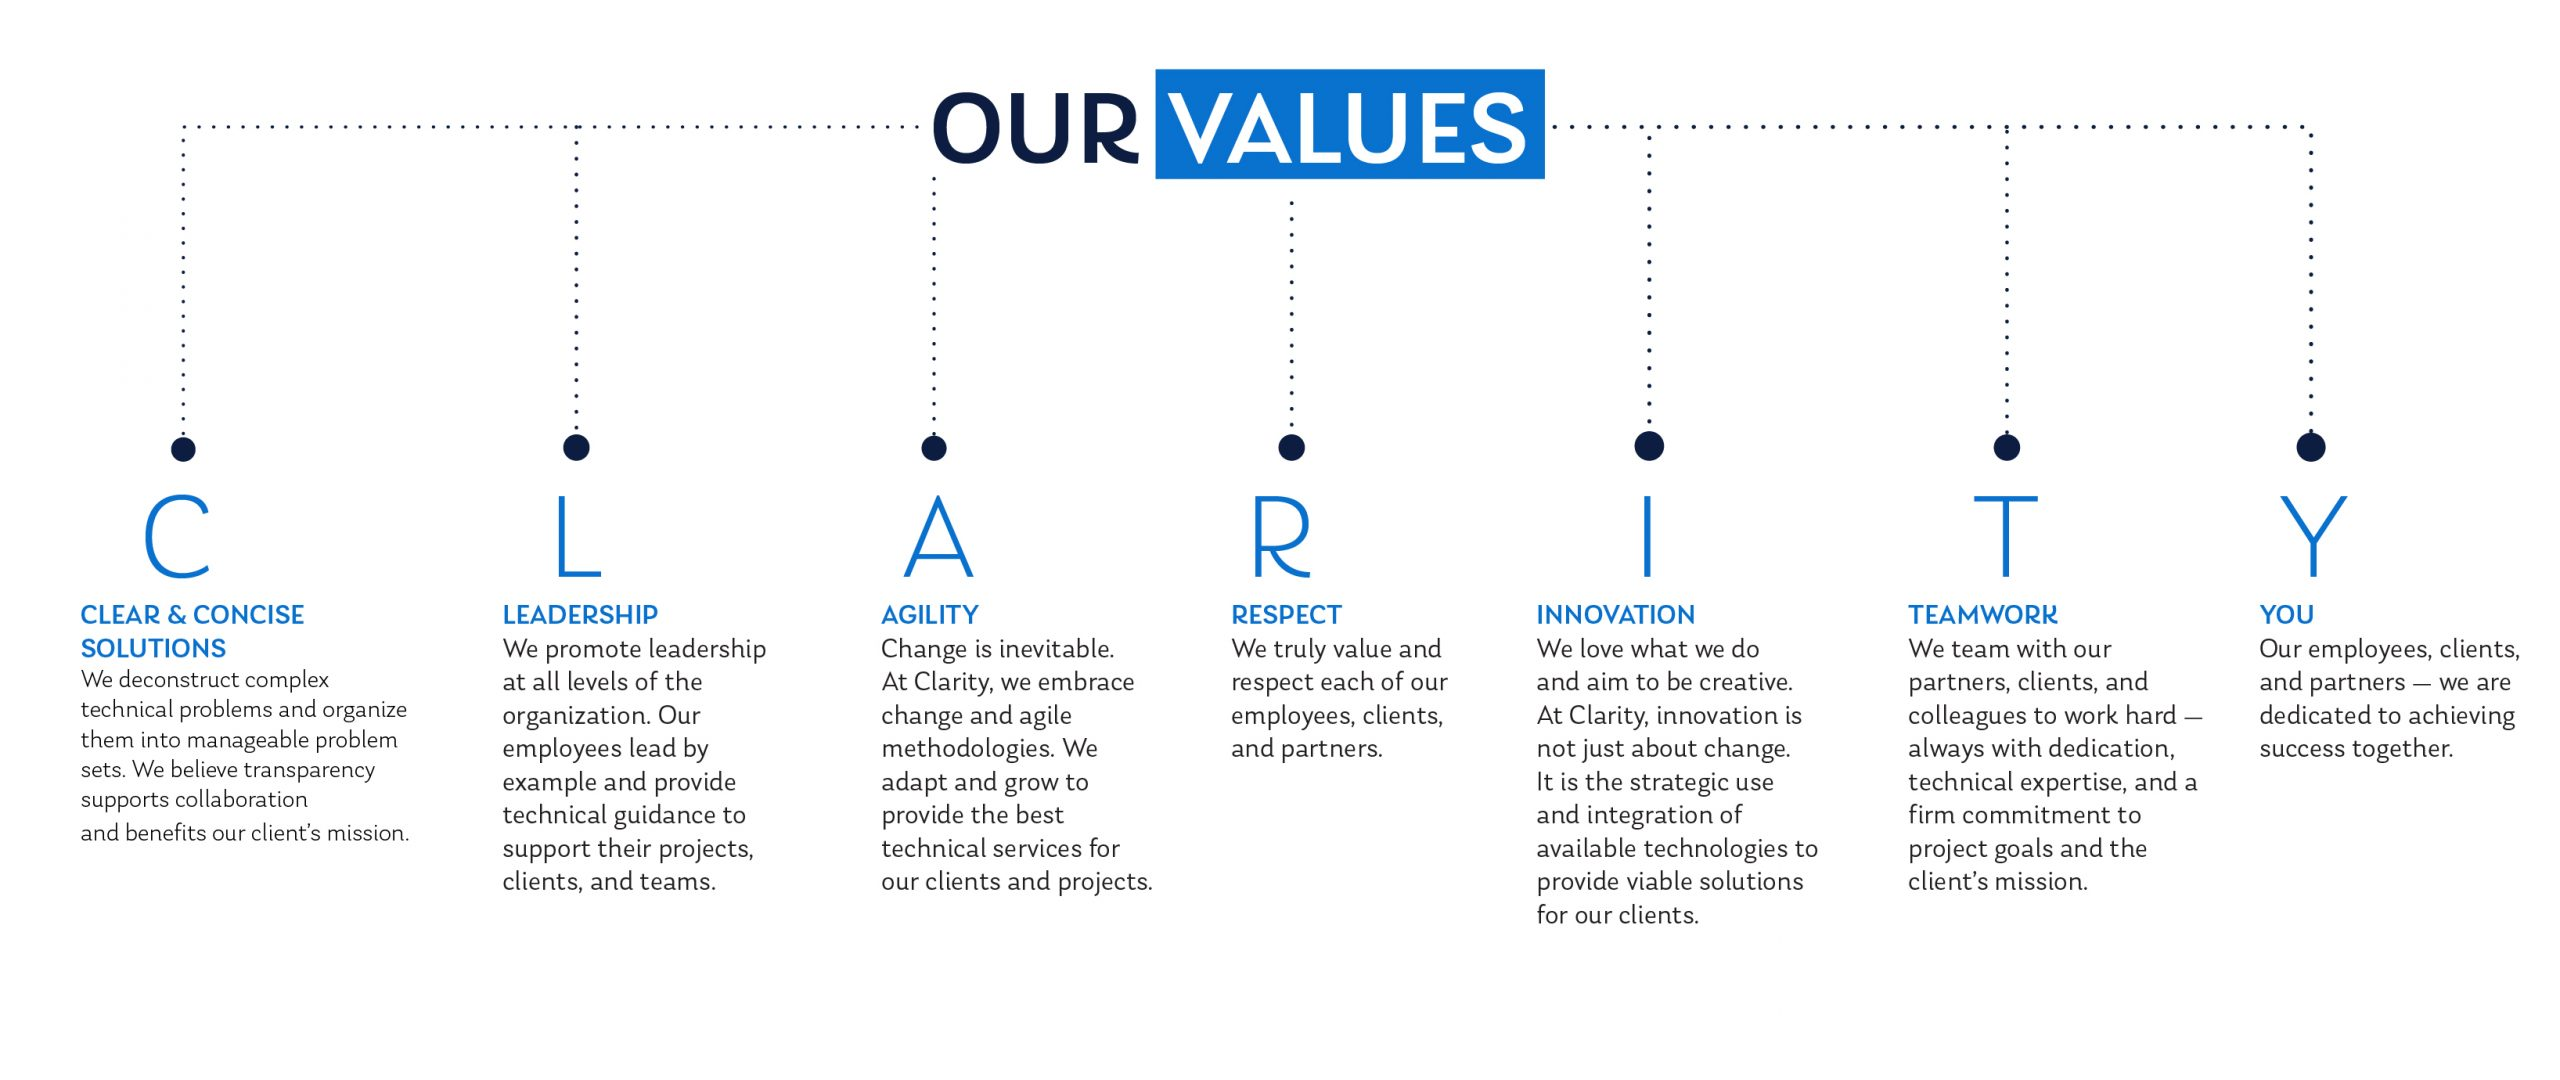 OUR VALUES chart with text that spells them out — C: Clear & Concise Solutions—We deconstruct complex technical problems and organize them into manageable problem sets. We believe transparency supports collaboration and benefits our client's mission. L: Leadership—We promote leadership at all levels of the organization. Our employees lead by example and provide technical guidance to support their projects, clients, and teams. A: Agility—Change is inevitable. At Clarity, we embrace change and agile methodologies. We adapt and grow to provide the best technical services for our clients and projects. R: Respect—We truly value and respect each of our employees, clients, and partners. I: Innovation—We love what we do and aim to be creative. At Clarity, innovation is not just about change. It is the strategic use and integration of available technologies to provide viable solutions for our clients. T: Teamwork—We team with our partners, clients, and colleagues to work hard — always with dedication, technical expertise, and a firm commitment to project goals and the client's mission. Y: You—Our employees, clients, and partners — we are dedicated to achieving success together.